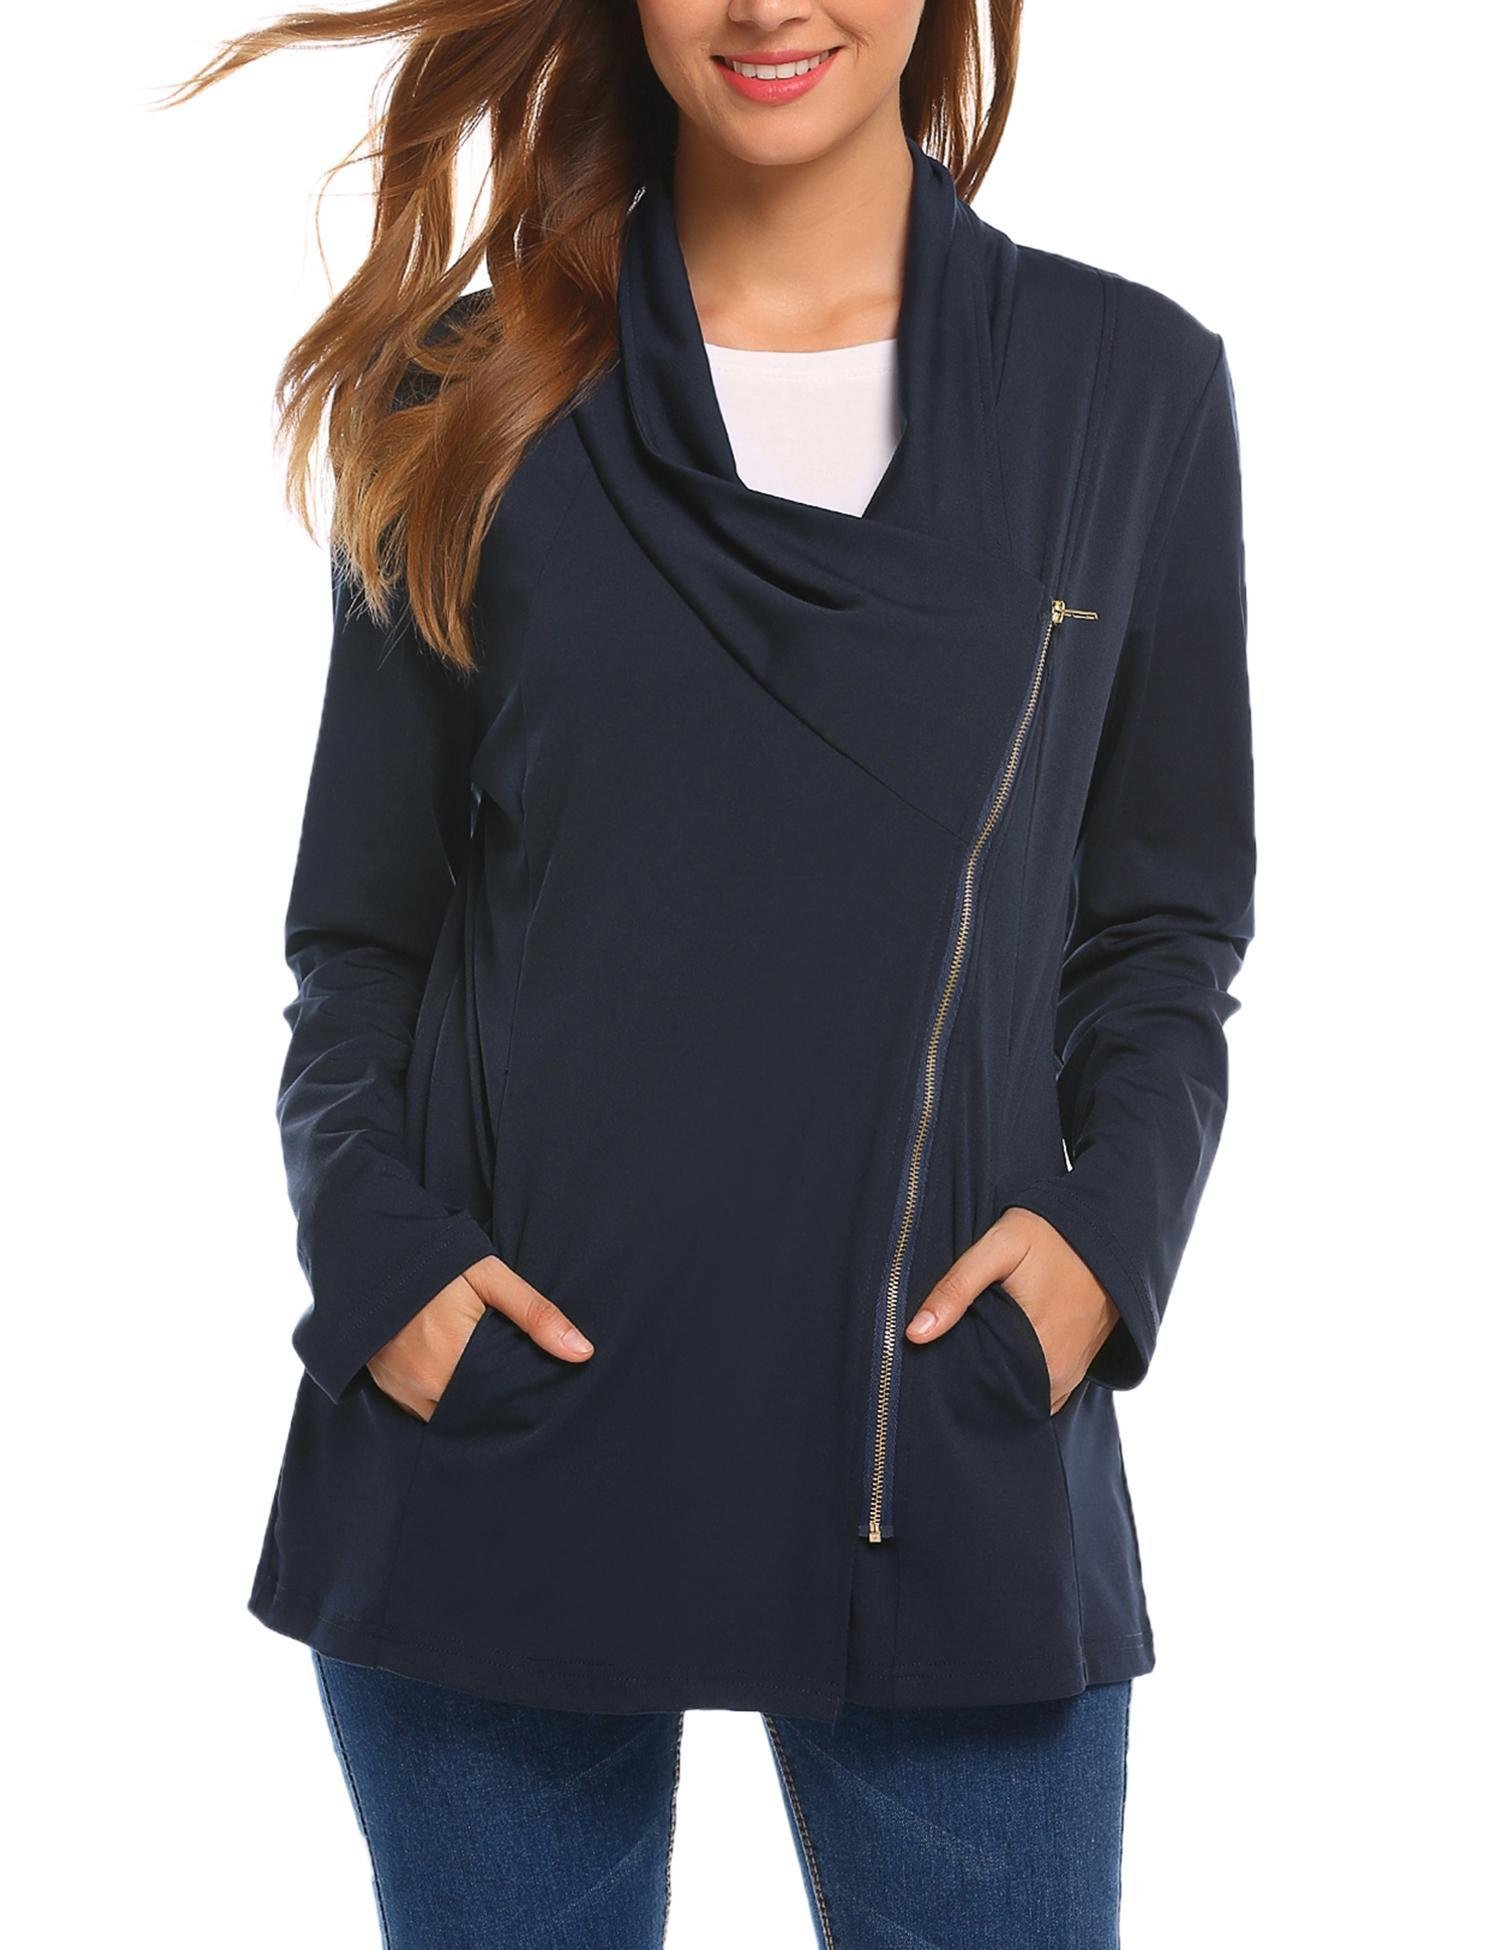 SummerRio Womens Open Front Solid Color Jacket Blazer Coat with Pockets Purplish Blue Navy Large